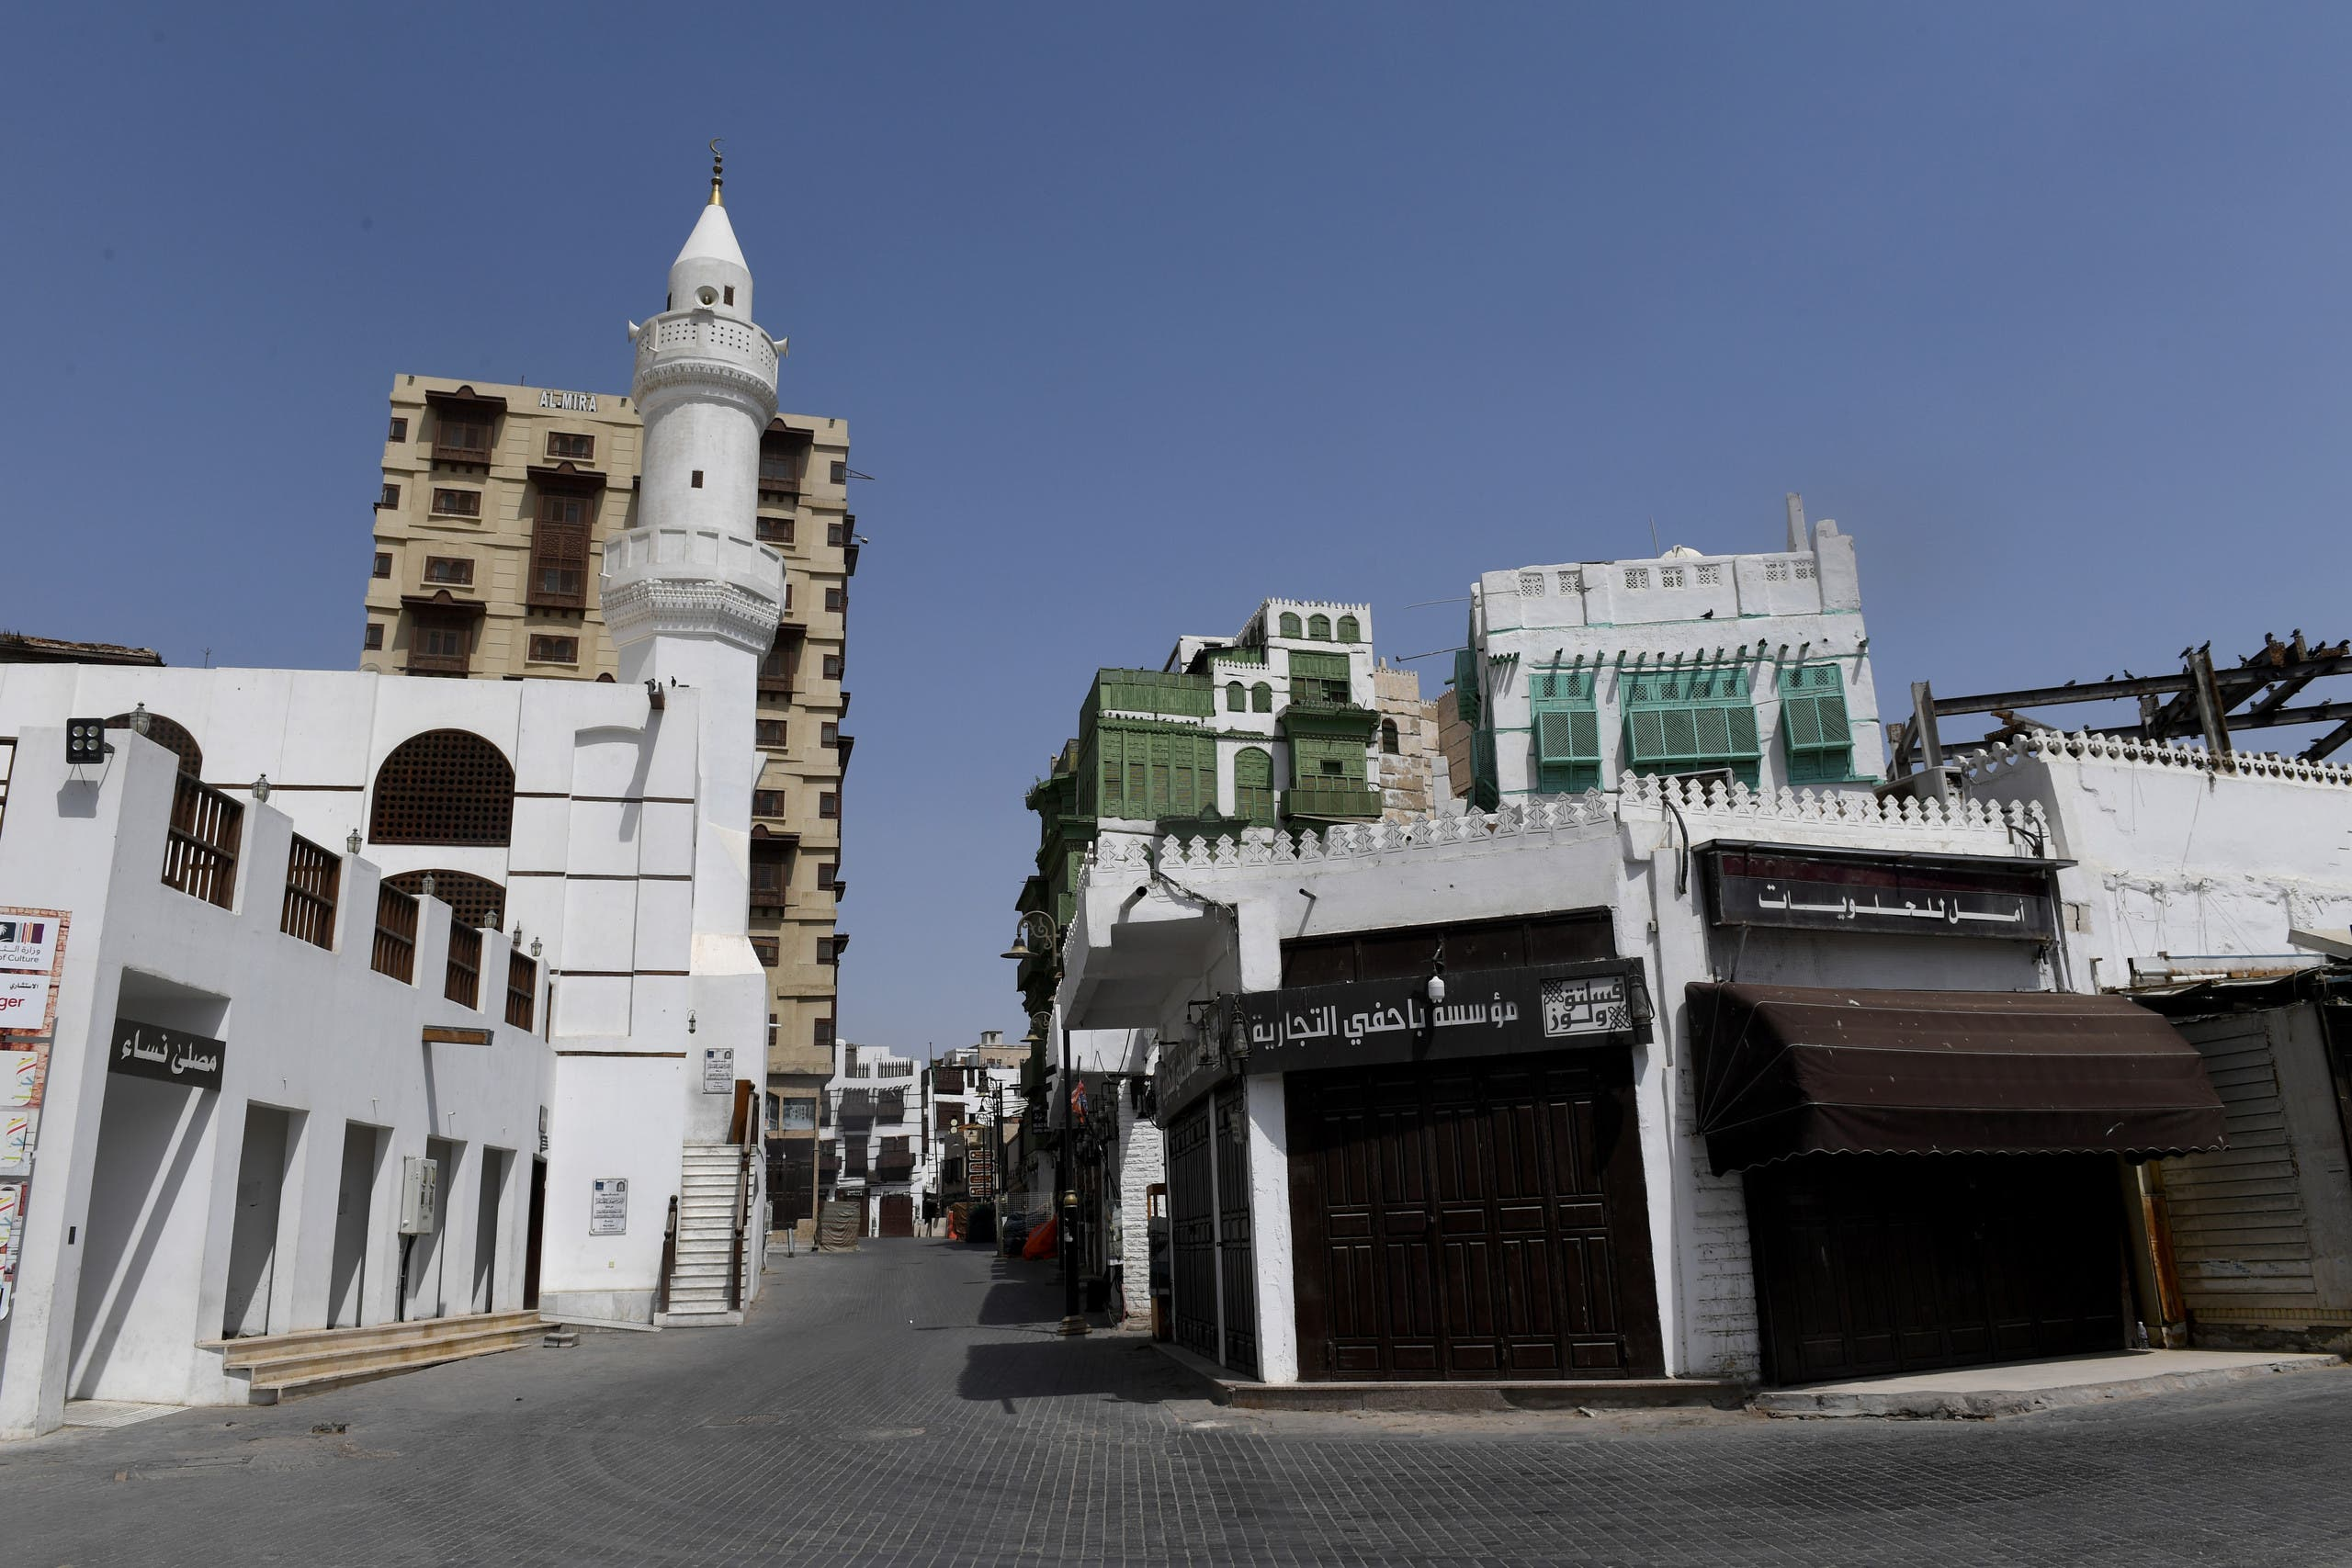 A picture taken on April 2, 2020 shows the deserted old town of Saudi Arabia's Red Sea coastal city of Jeddah. (AFP)